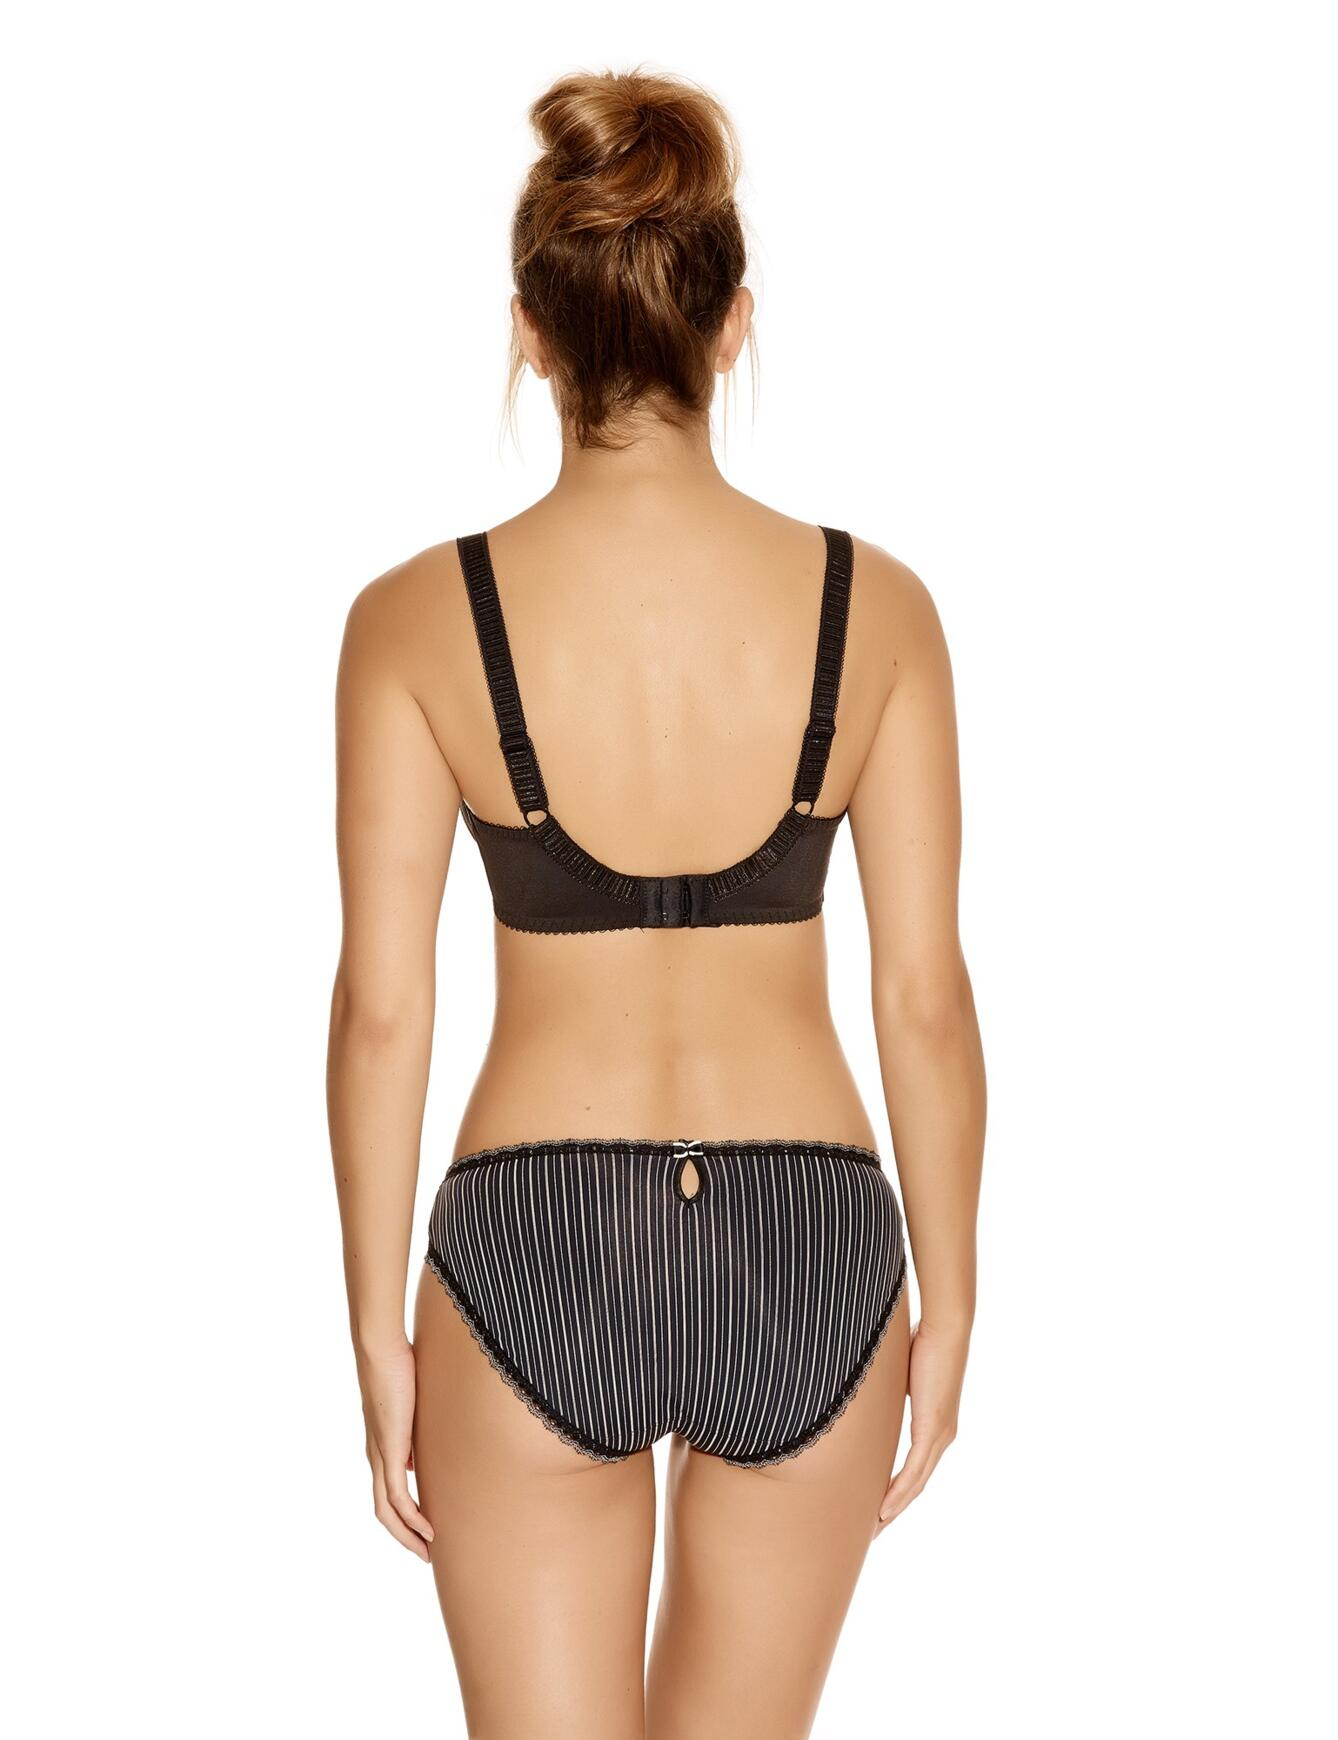 Fantasie Lois: Underwired with side support - Black